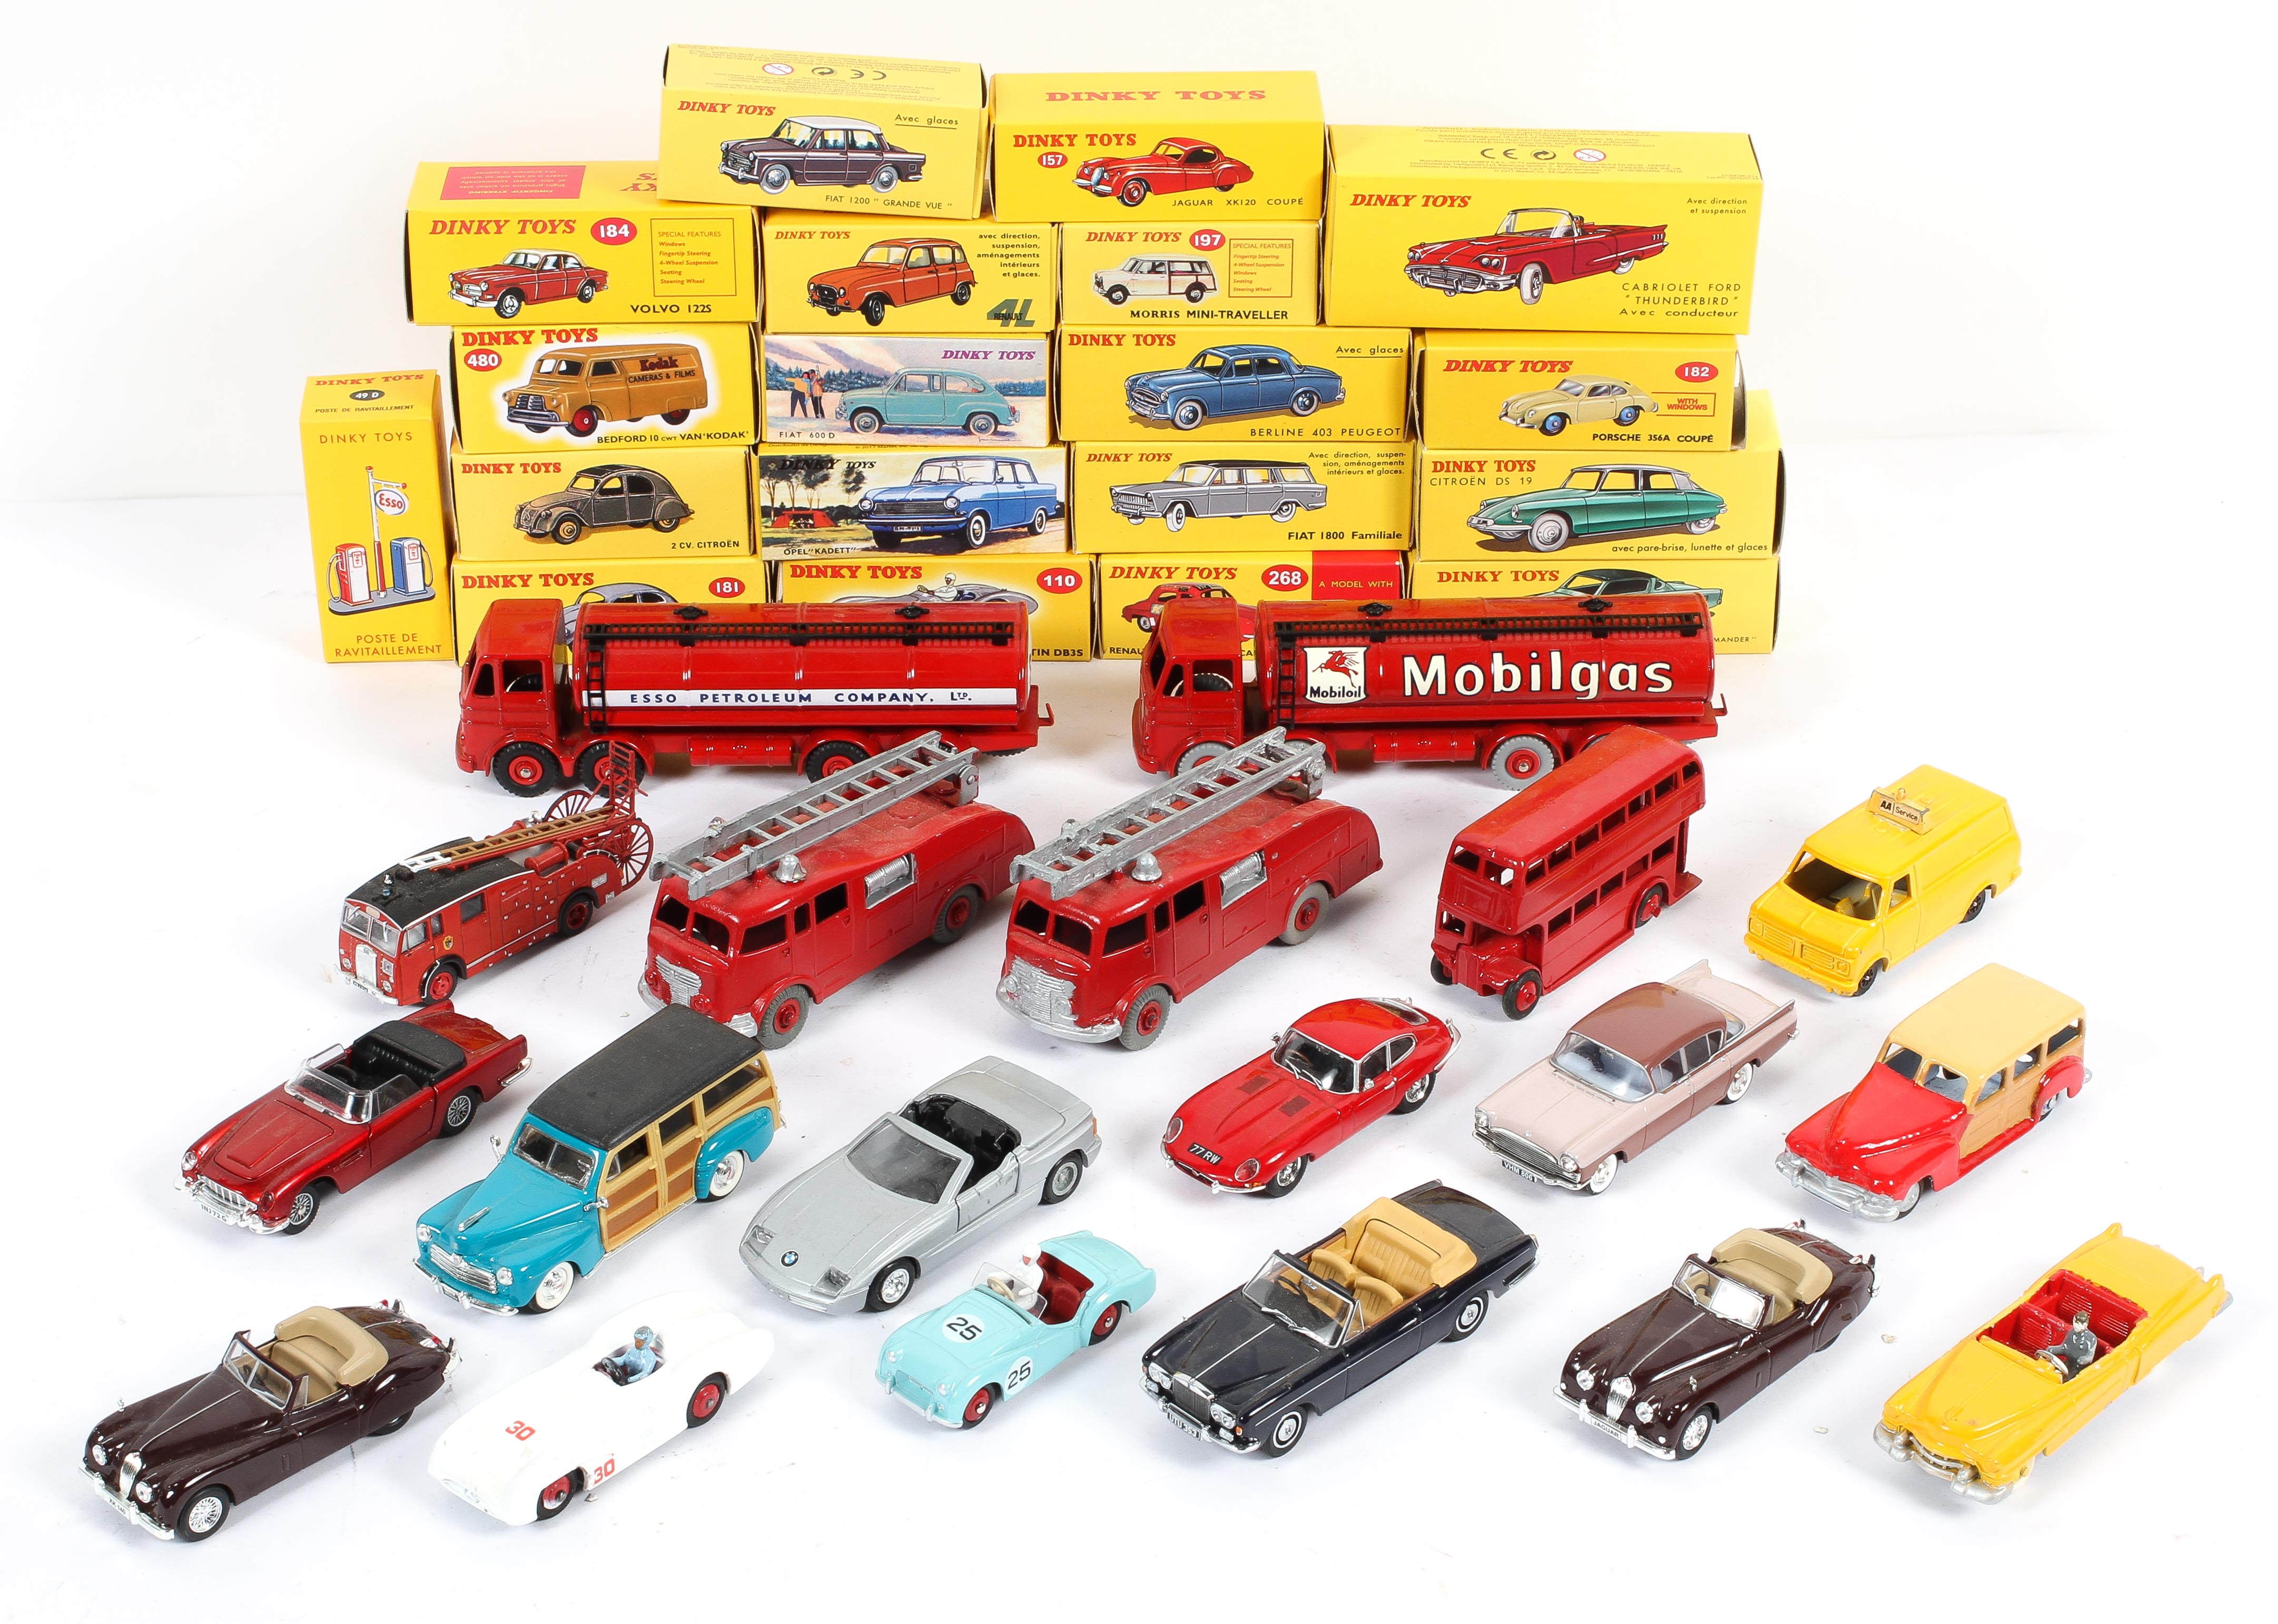 A collection of Dinky Toys in boxes, including: a Cabriolet Ford Thunderbird, an Aston Martin,